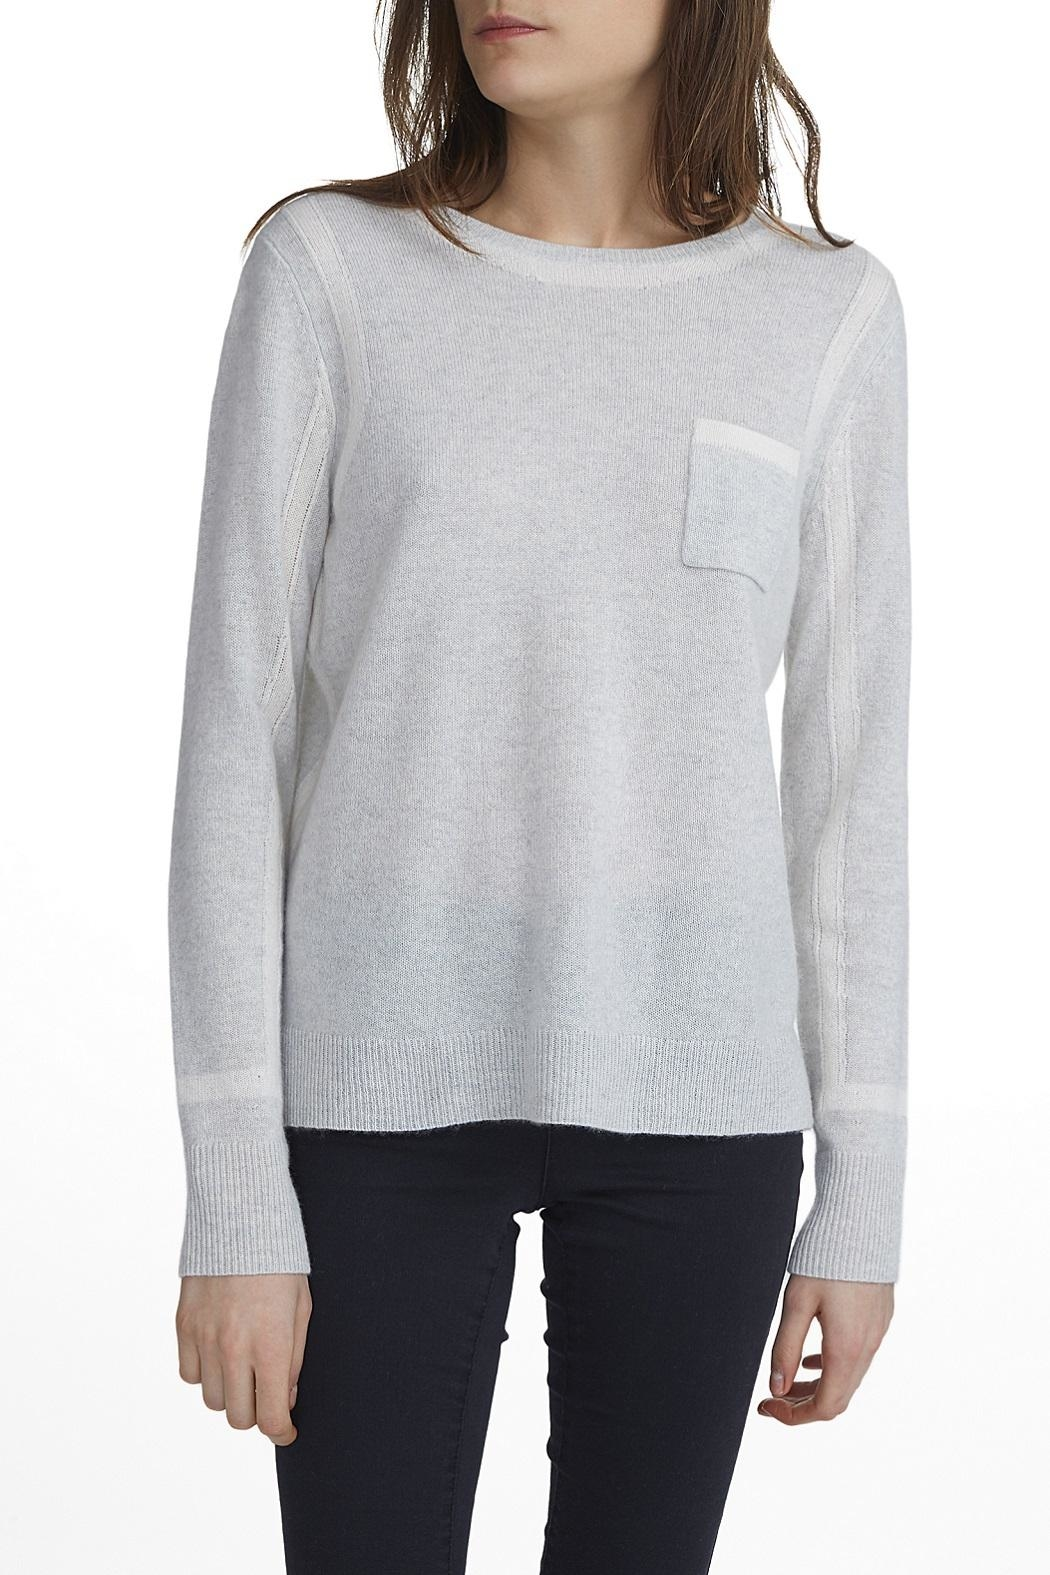 White + Warren Cashmere Framed Top - Front Cropped Image